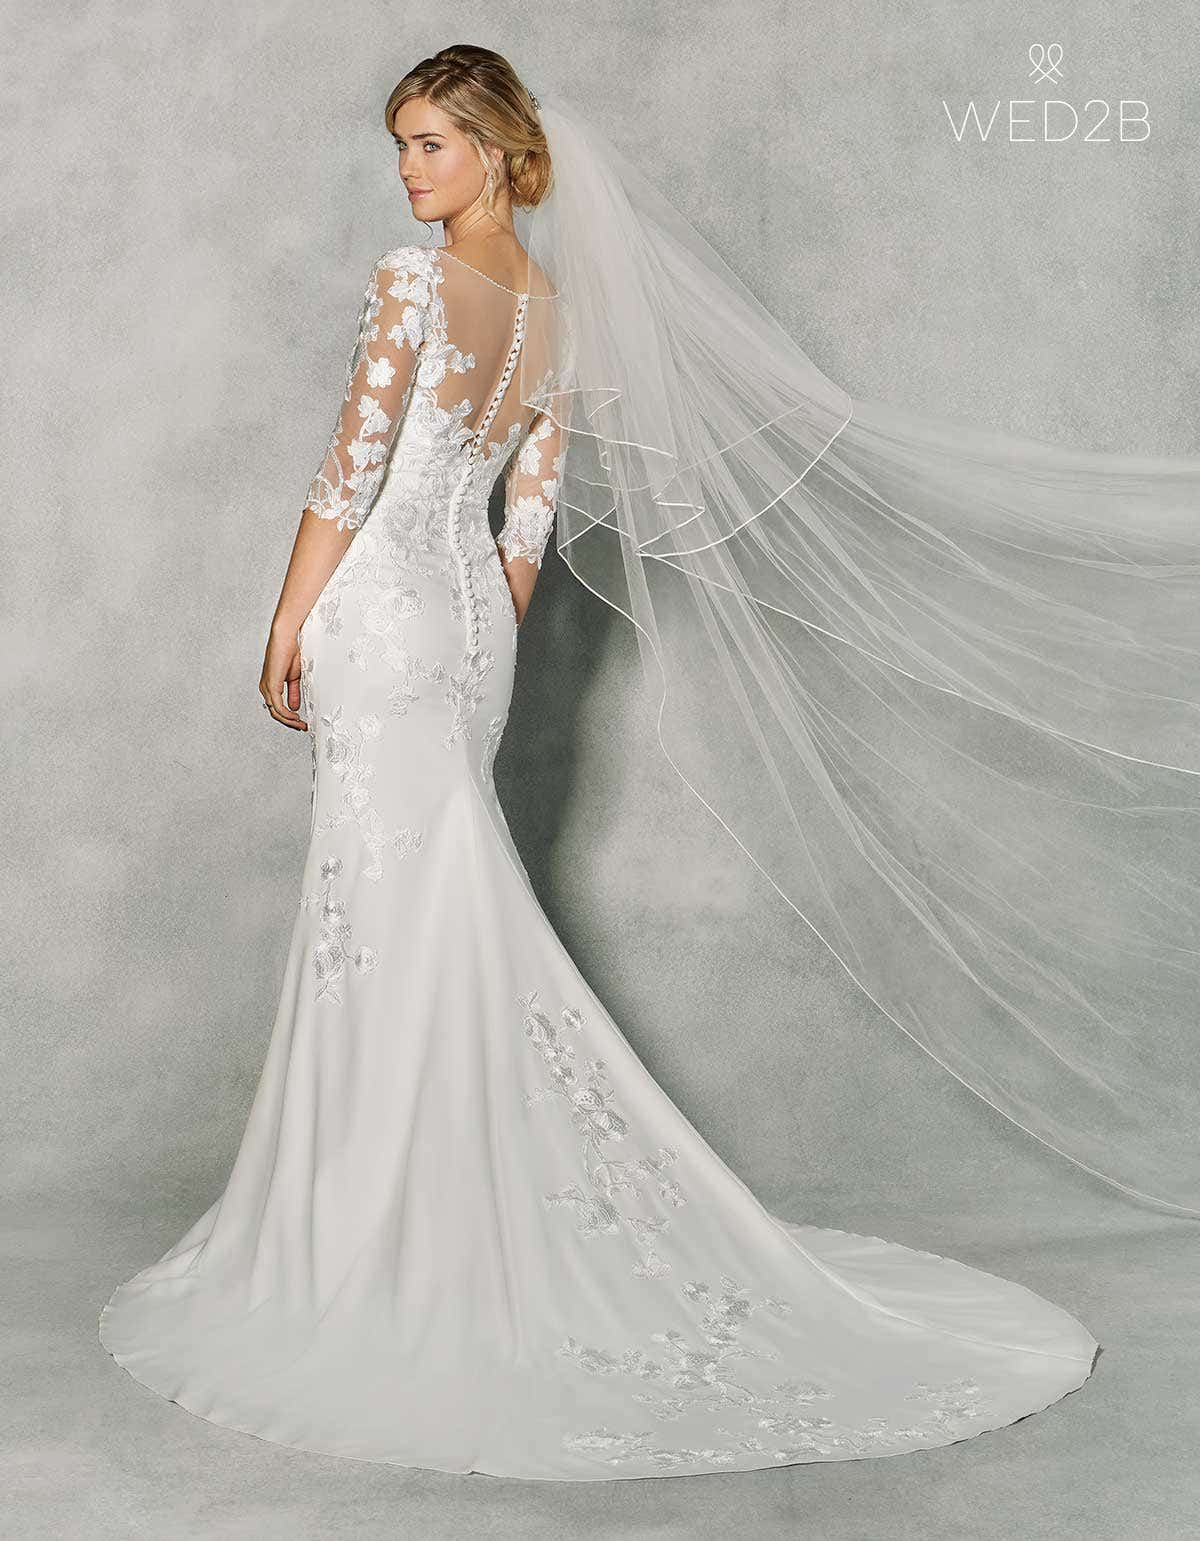 New a stunning wedding dress with sleeves by anna sorrano wed2b back view of stunning wedding dress with sleeves viola by anna sorrano junglespirit Image collections